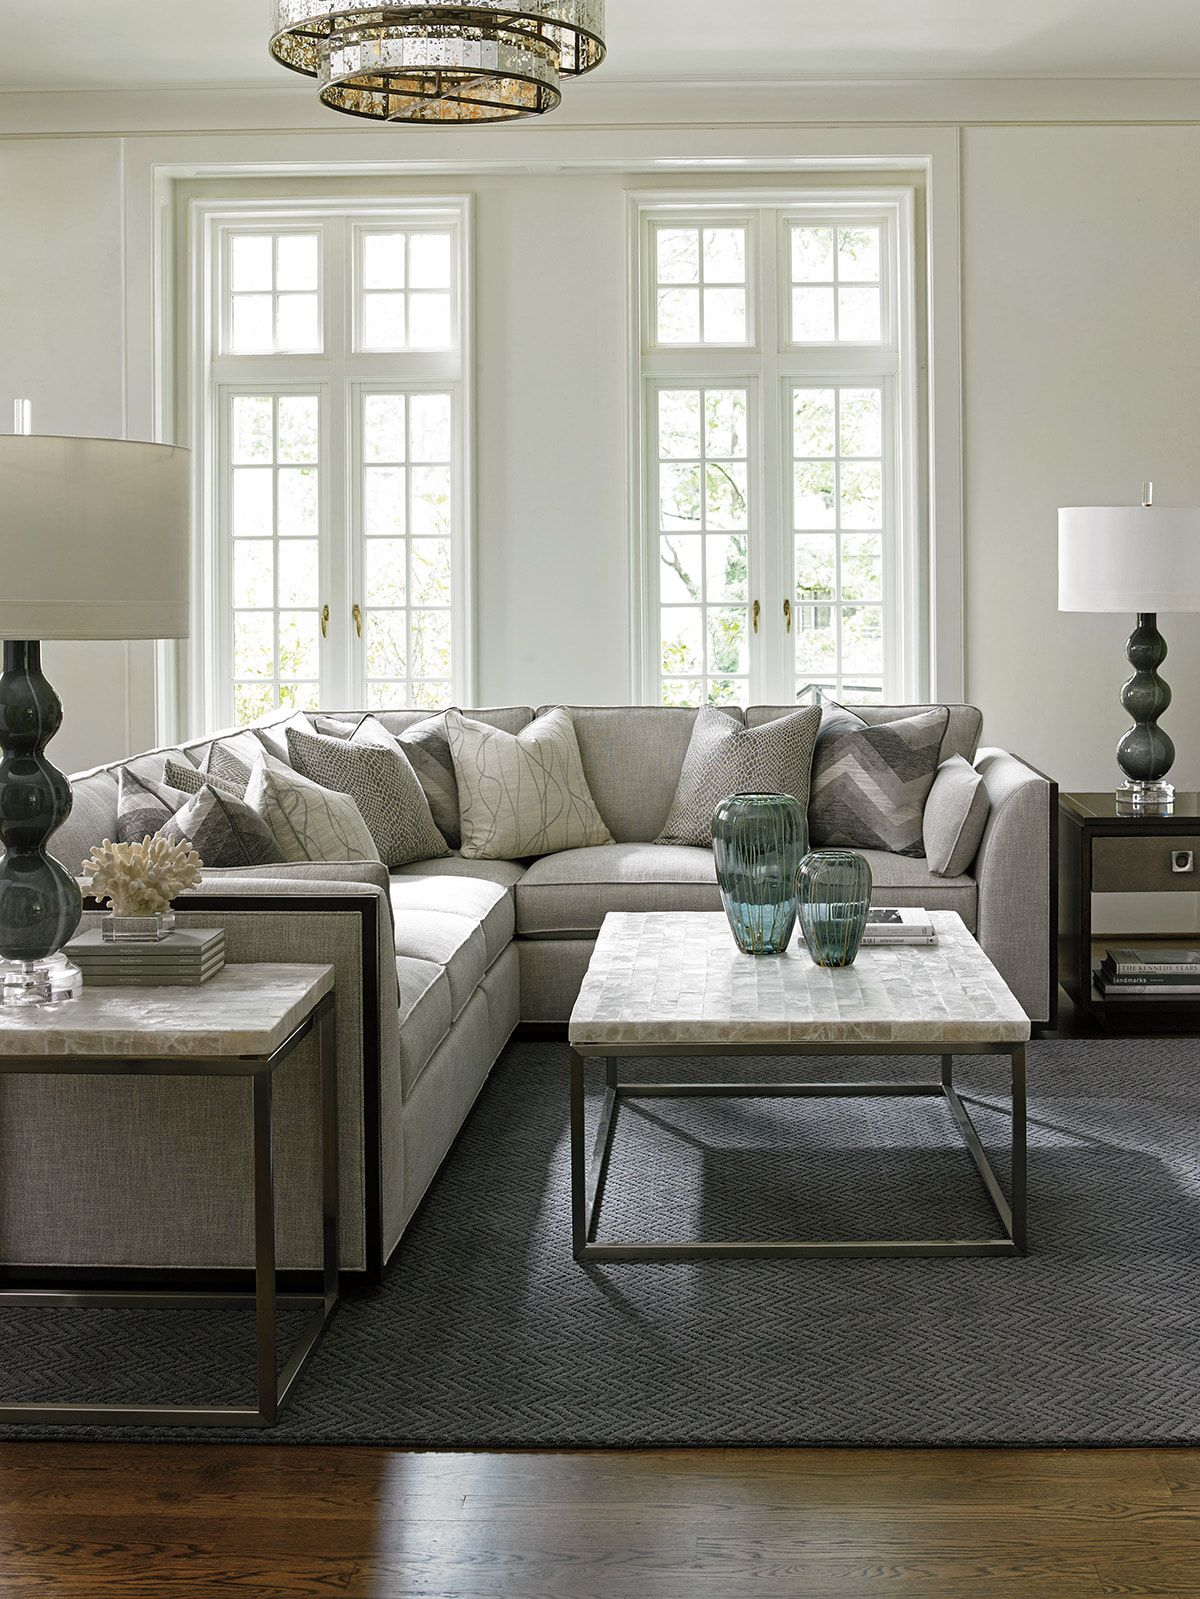 Marisol Cocktail Table Finish Natural In 2020 Taupe Sofa Living Room Living Room Decor Gray Living Room Designs #taupe #sofa #living #room #ideas